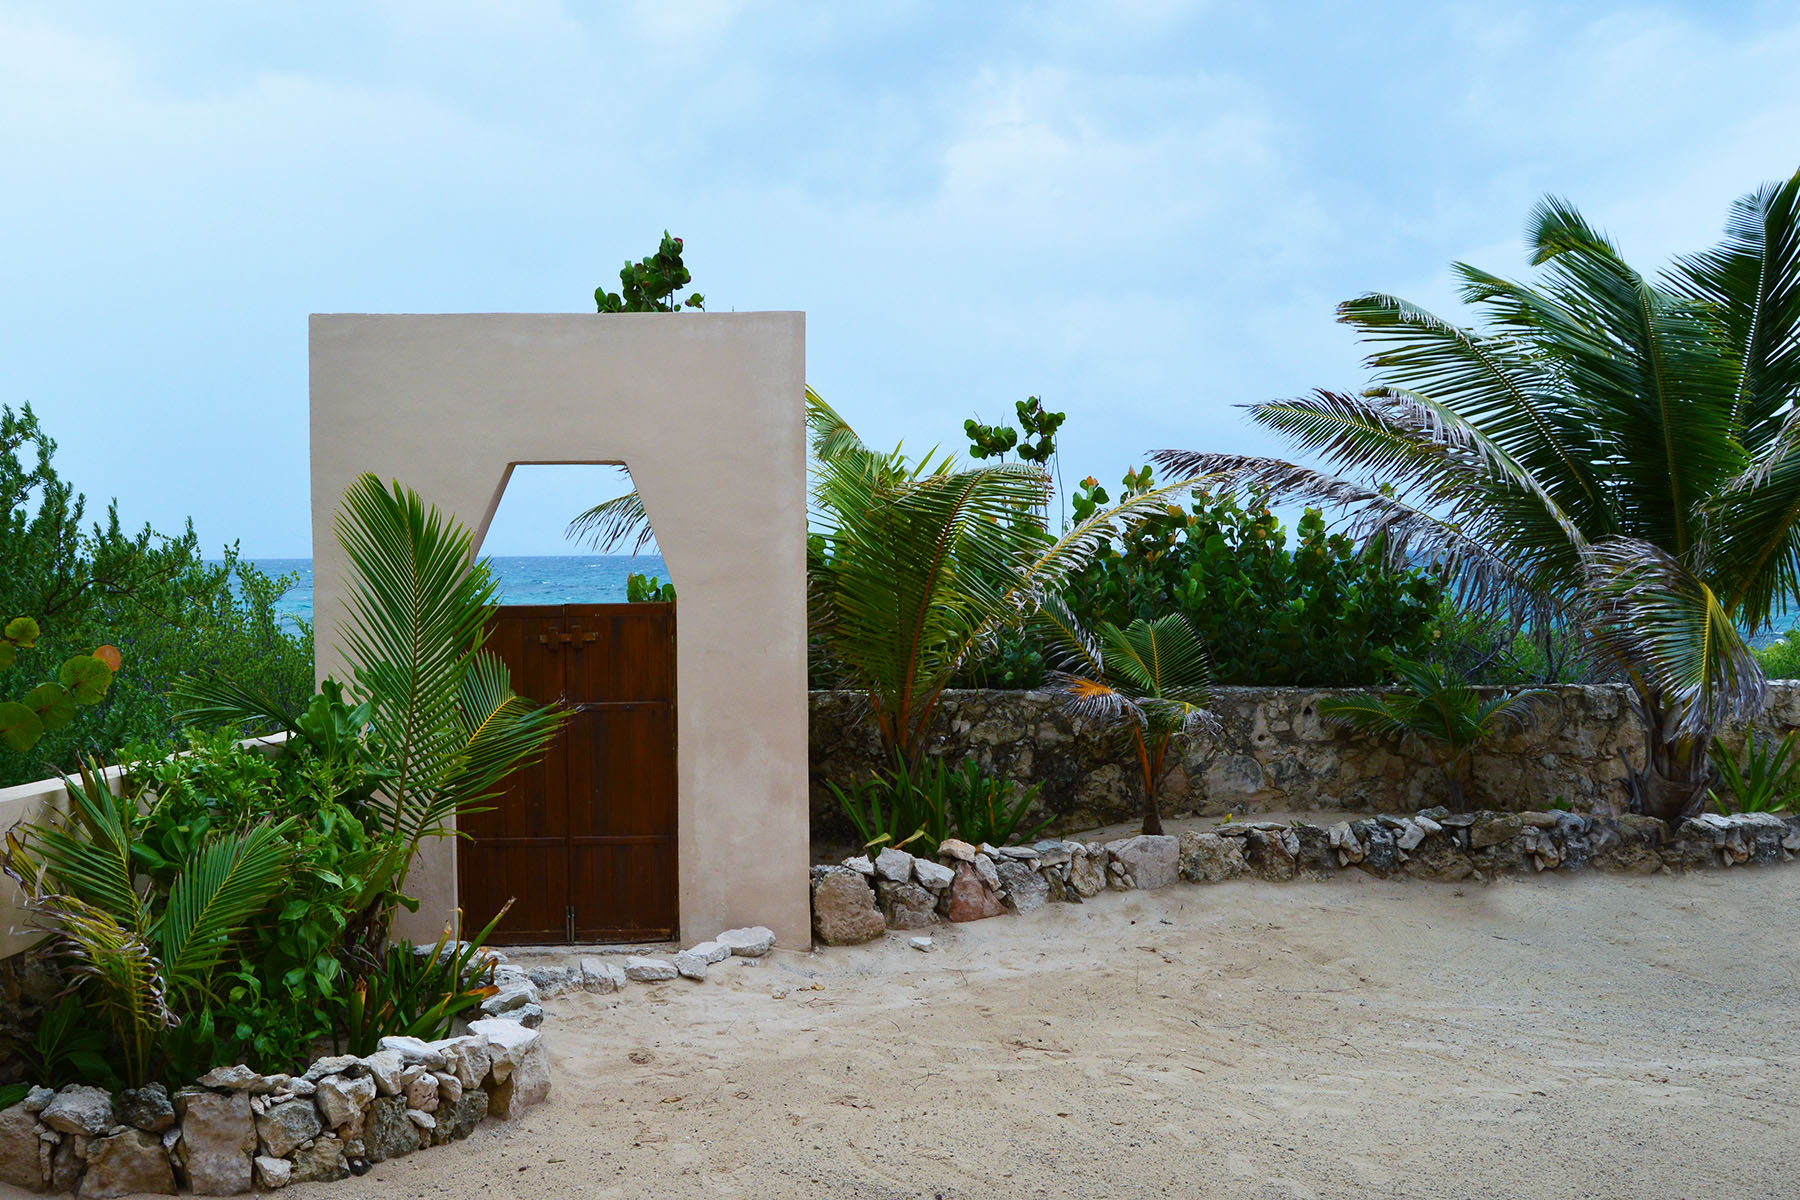 Additional photo for property listing at SPECTACULAR RESIDENCE IN NORTH BEACH ISLA MUJERES Spectacular Residence in North Beach Punta Norte Isla Mujeres, Quintana Roo 77409 Mexico